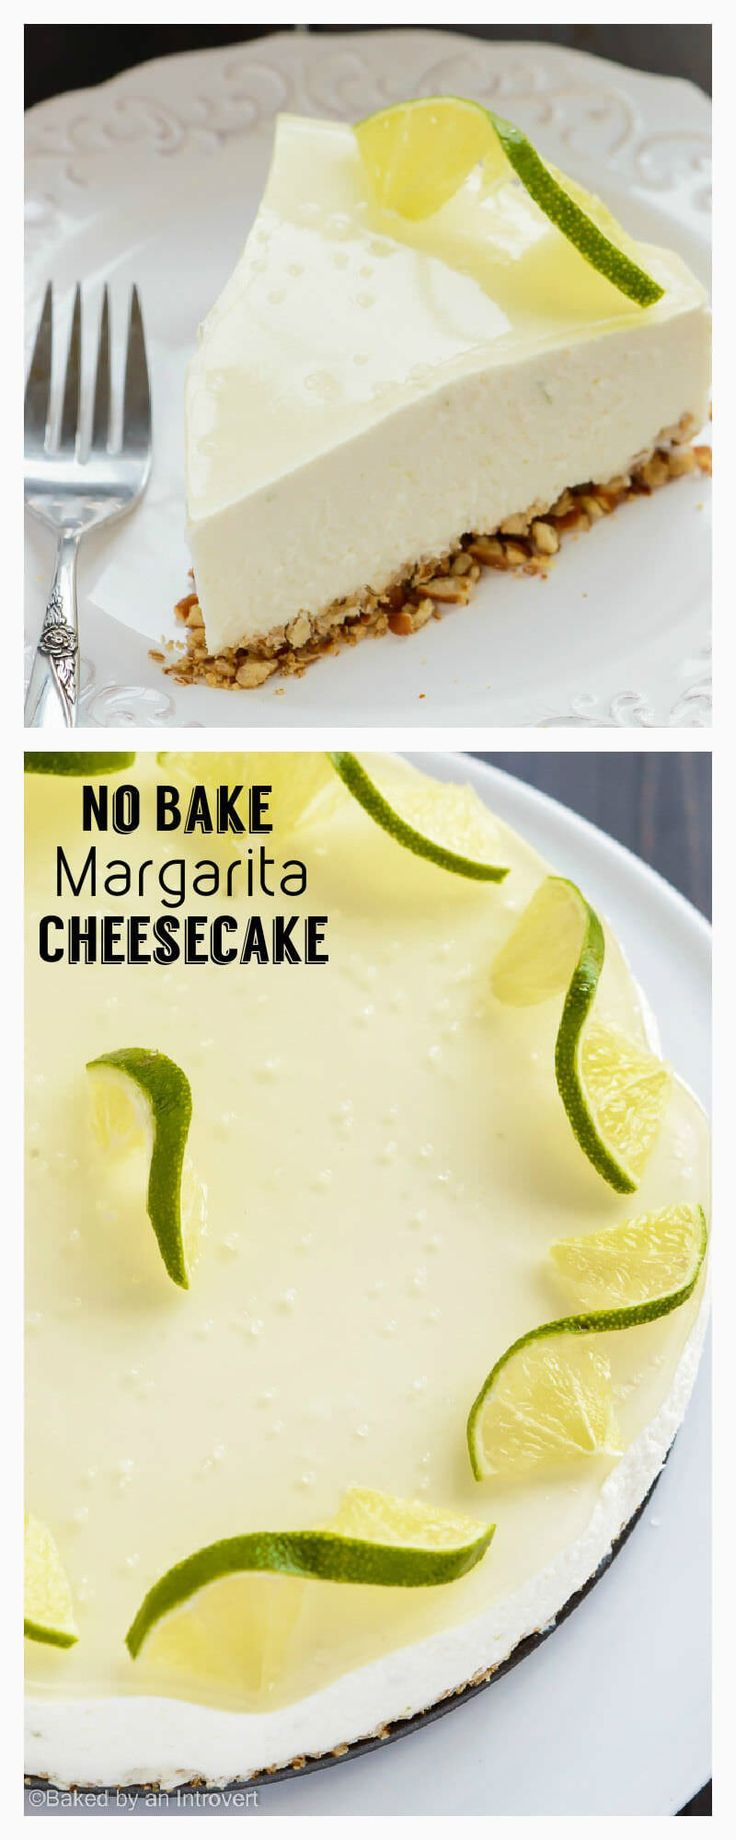 No bake margarita cheesecake made with a pretzel crust, a light creamy filling, and topped with a thin layer of margarita gelatin. This cheesecake tastes just like a classic margarita and it's so easy to whip up!